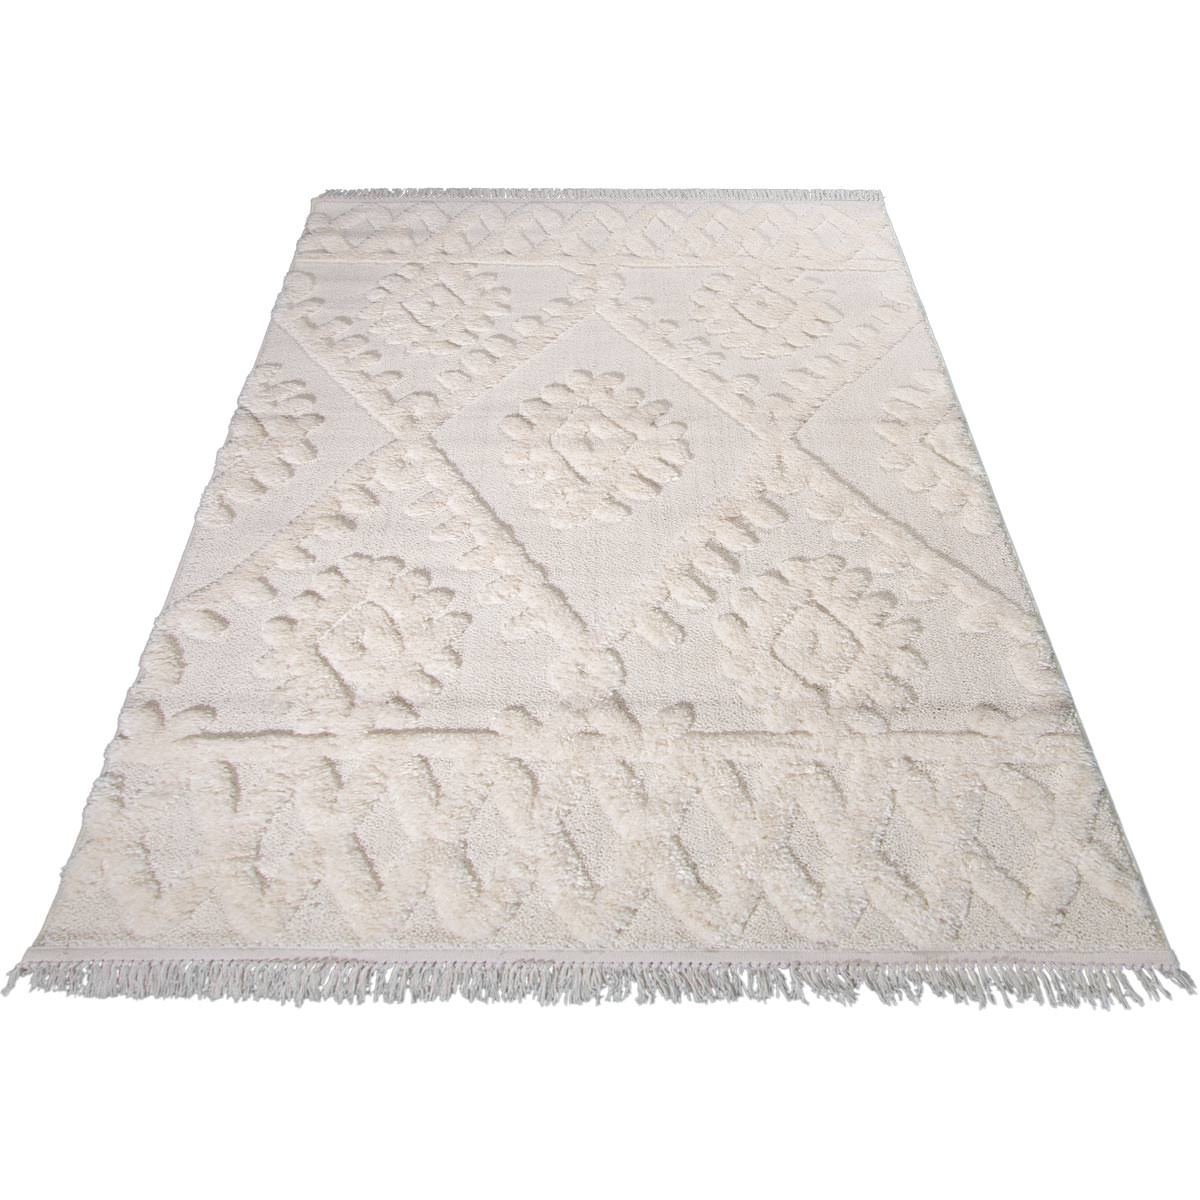 Atlas Rug 11 Cream - Fringes 7